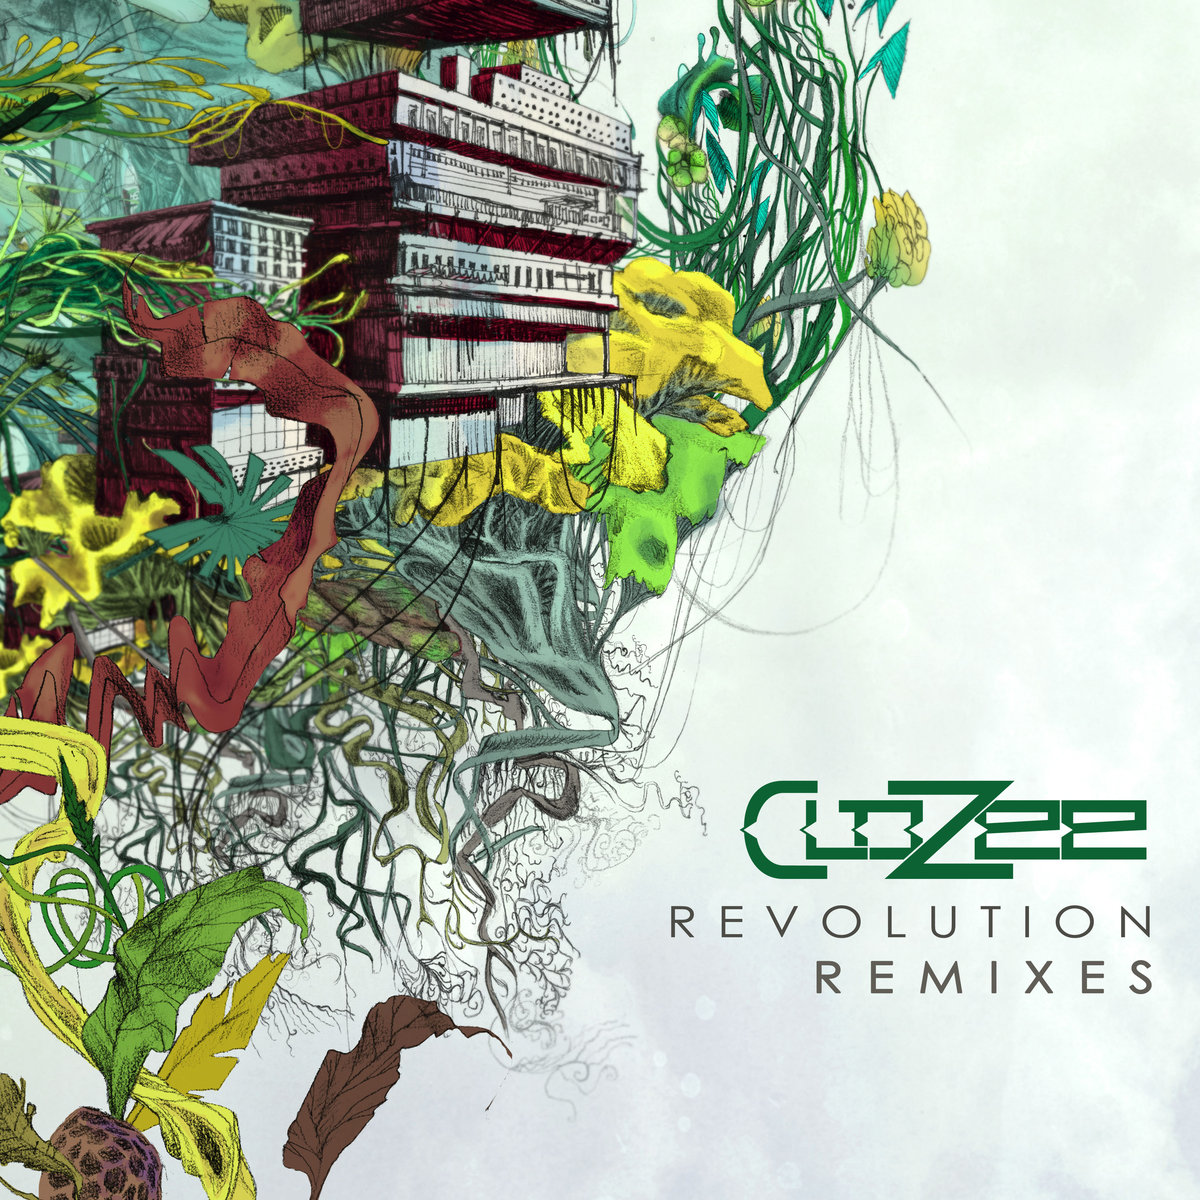 CloZee - Revolution (AMB Remix) @ 'Revolution Remixes' album (chill, downtempo)